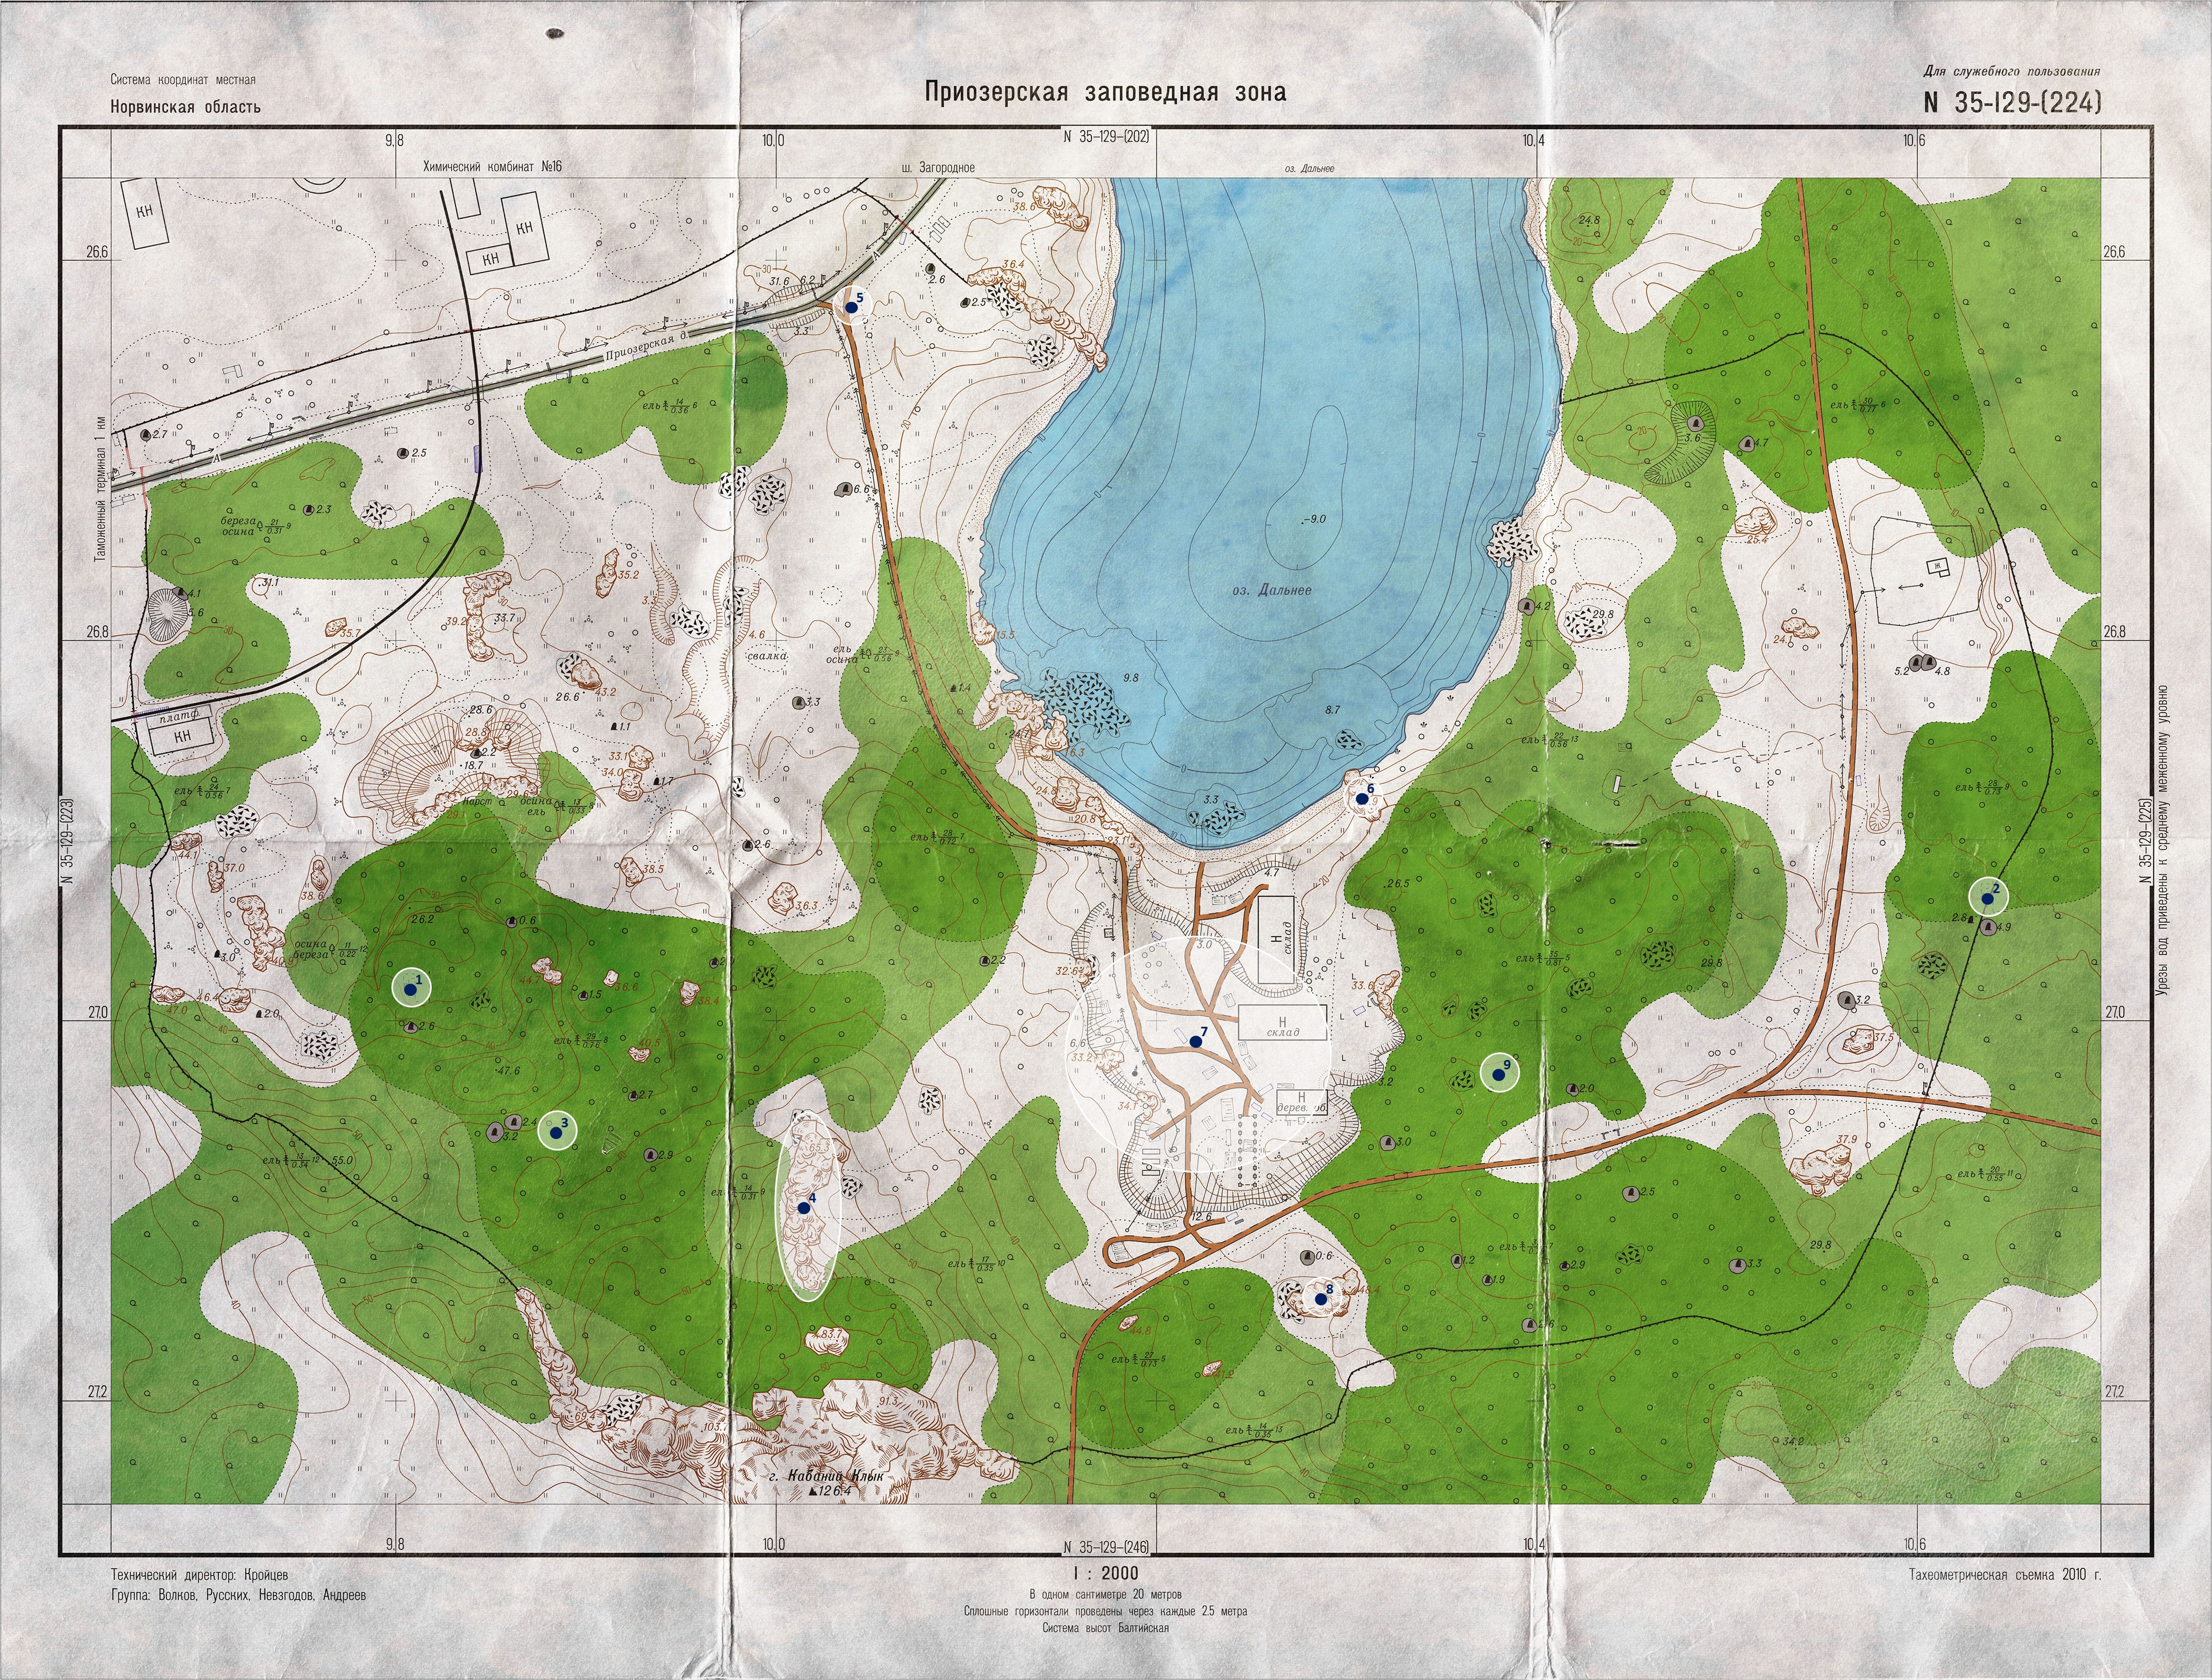 Points of Interest on the Woods map